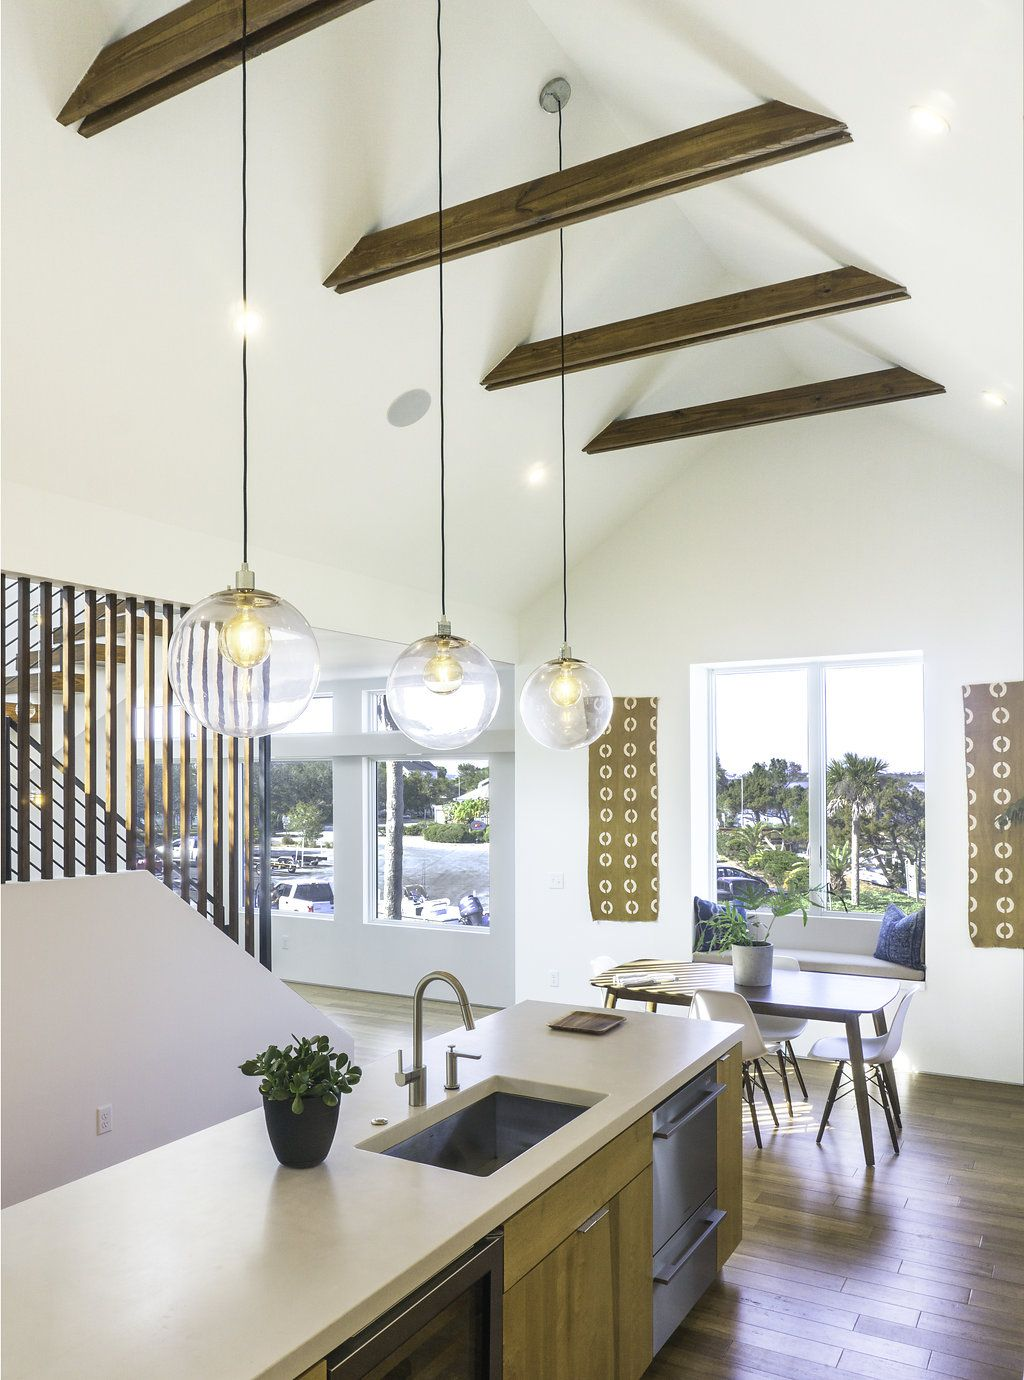 Kitchen with Exposed Collar Ties | The Live Oak House | Pinterest ...